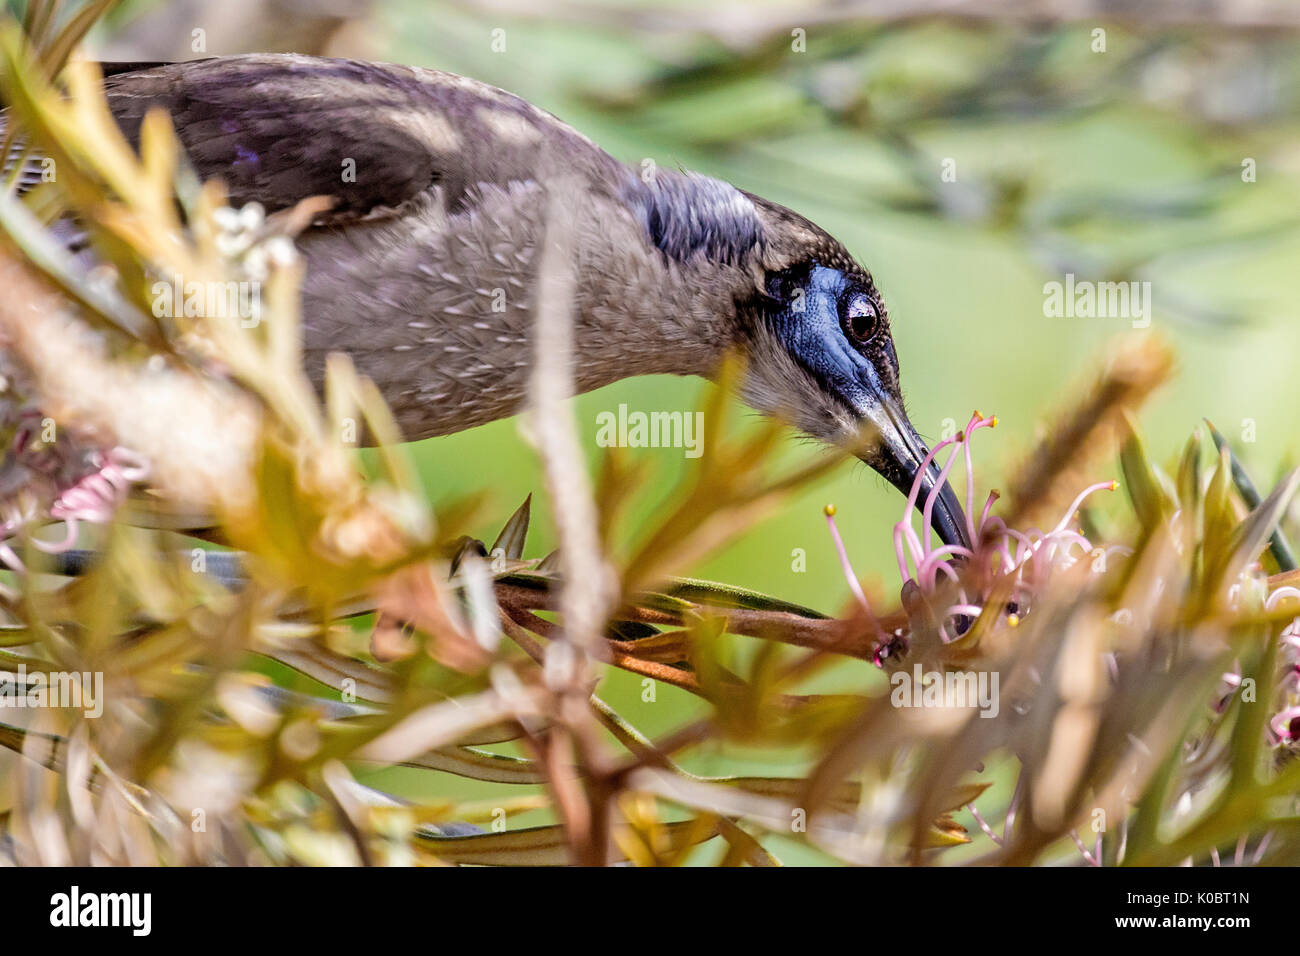 Little friarbird feeding on nectar - Stock Image